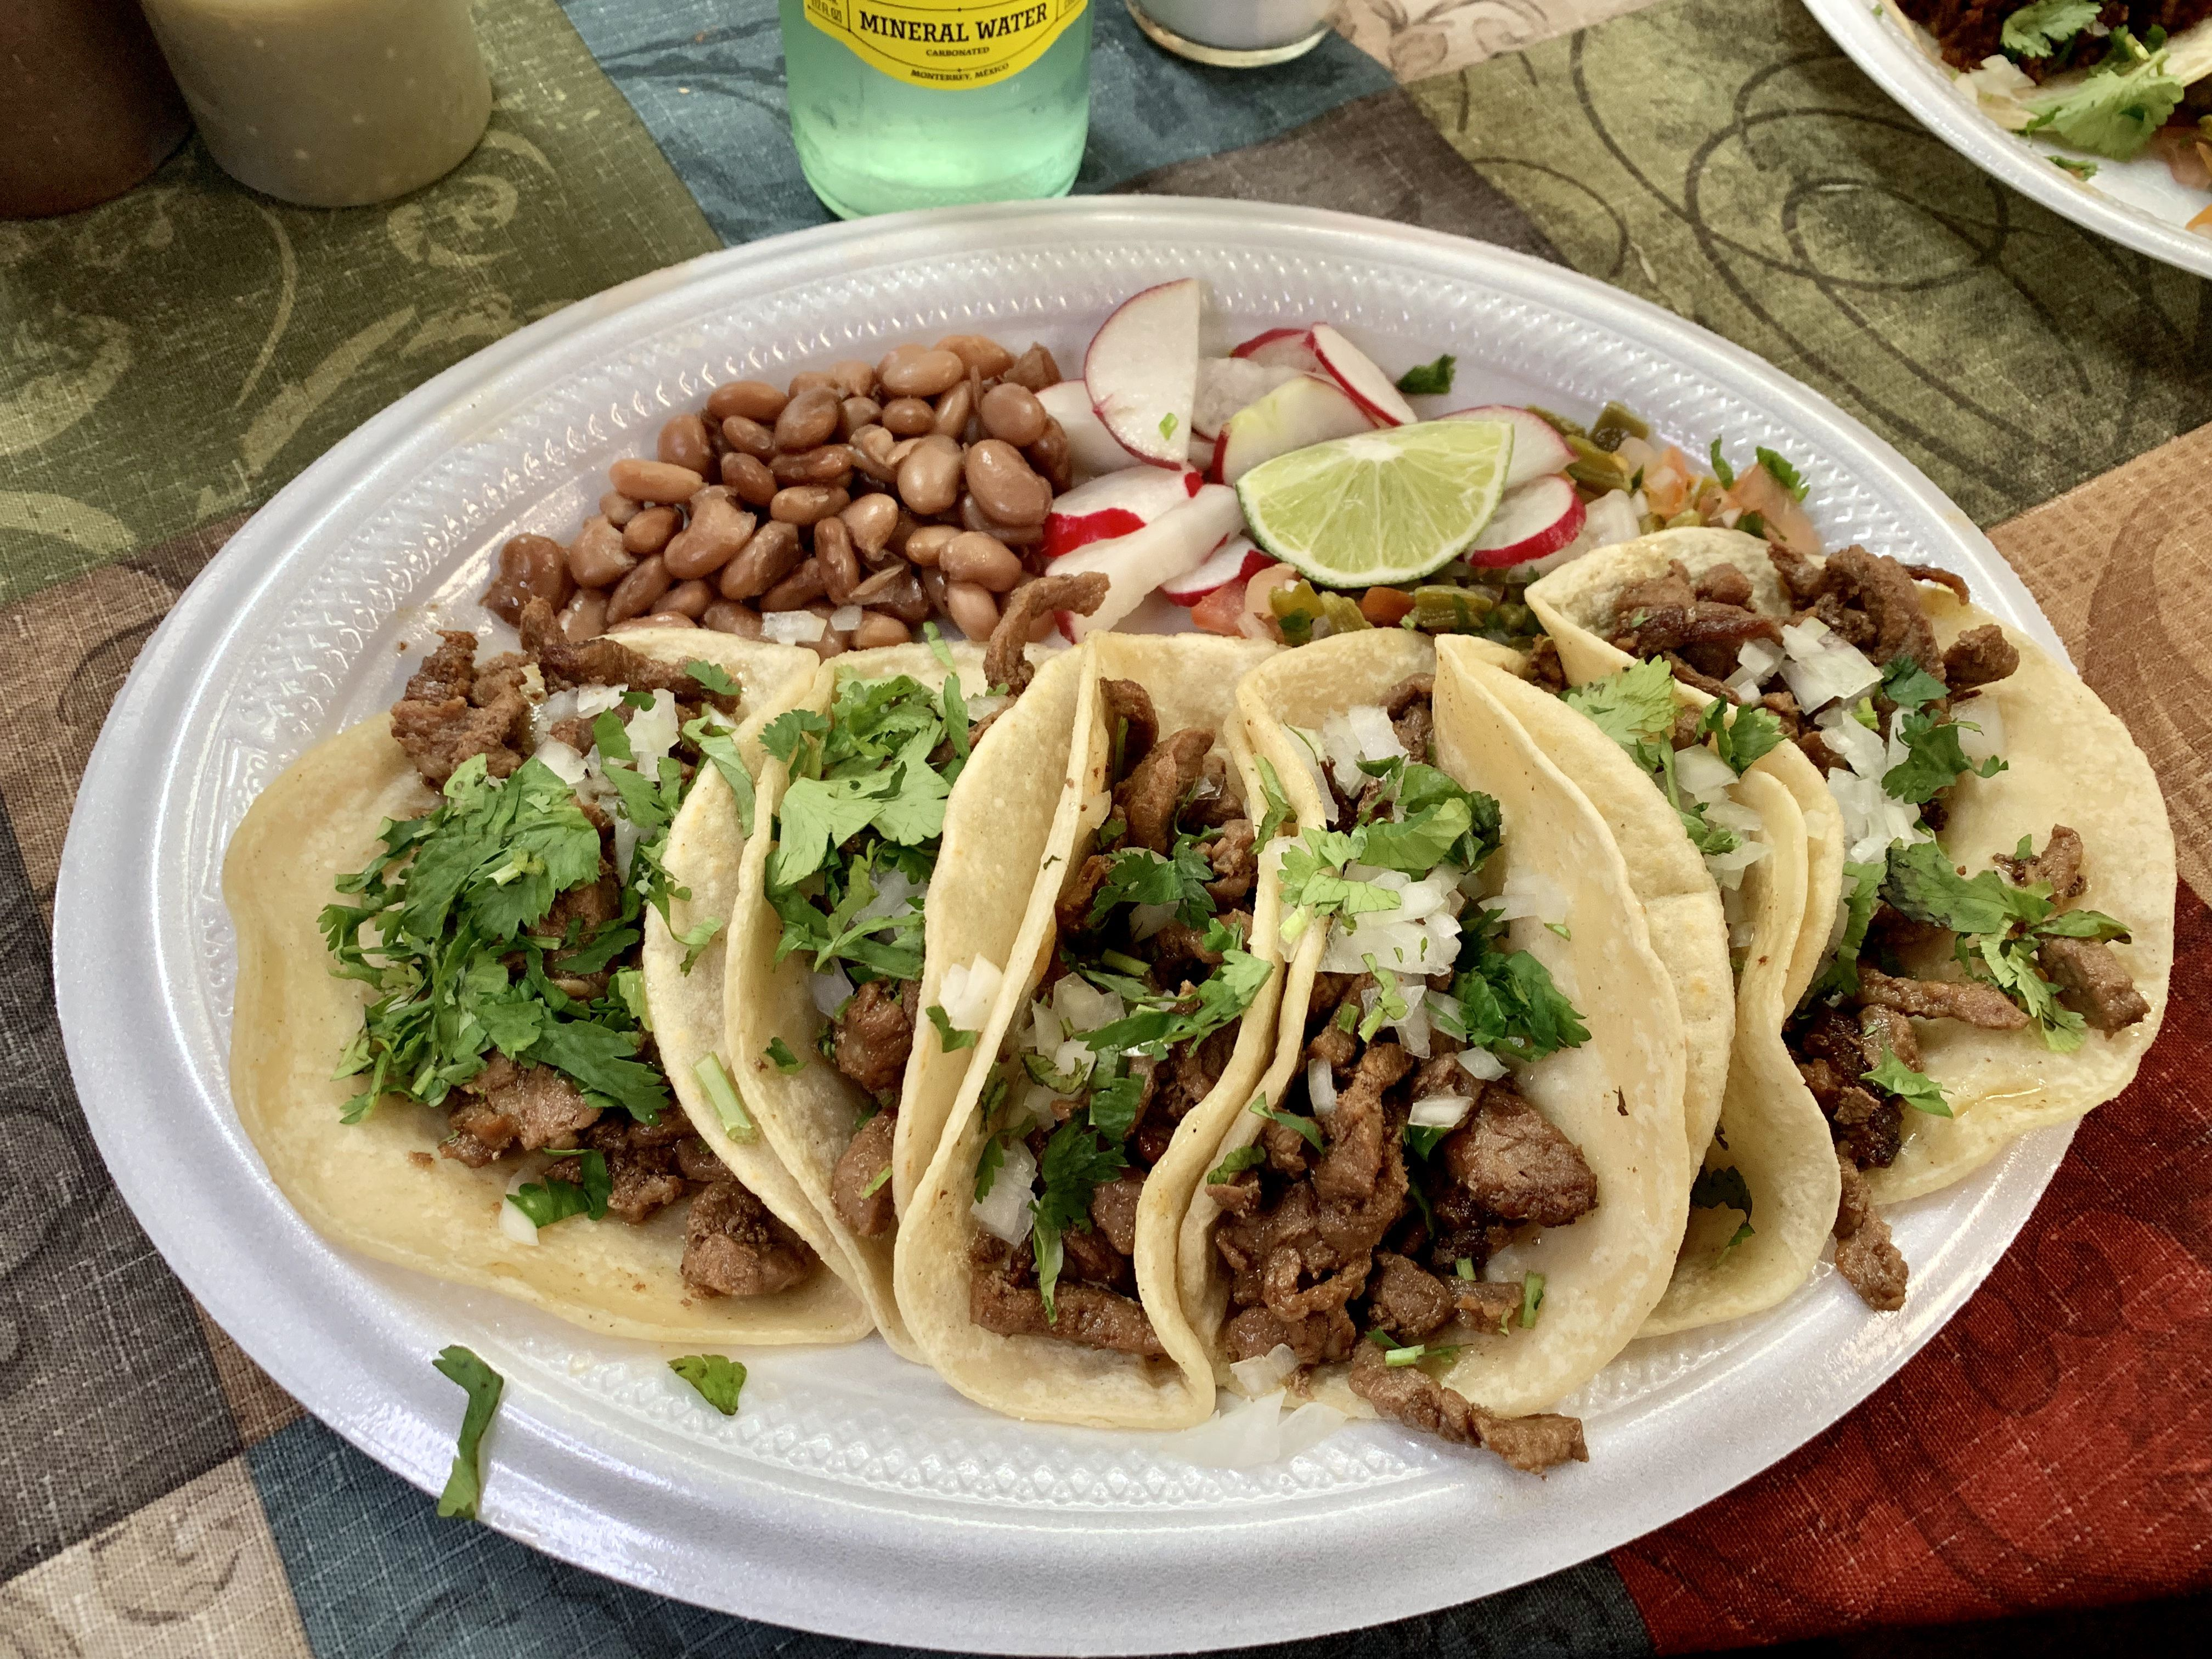 The Best Tacos in Fayetteville, NC